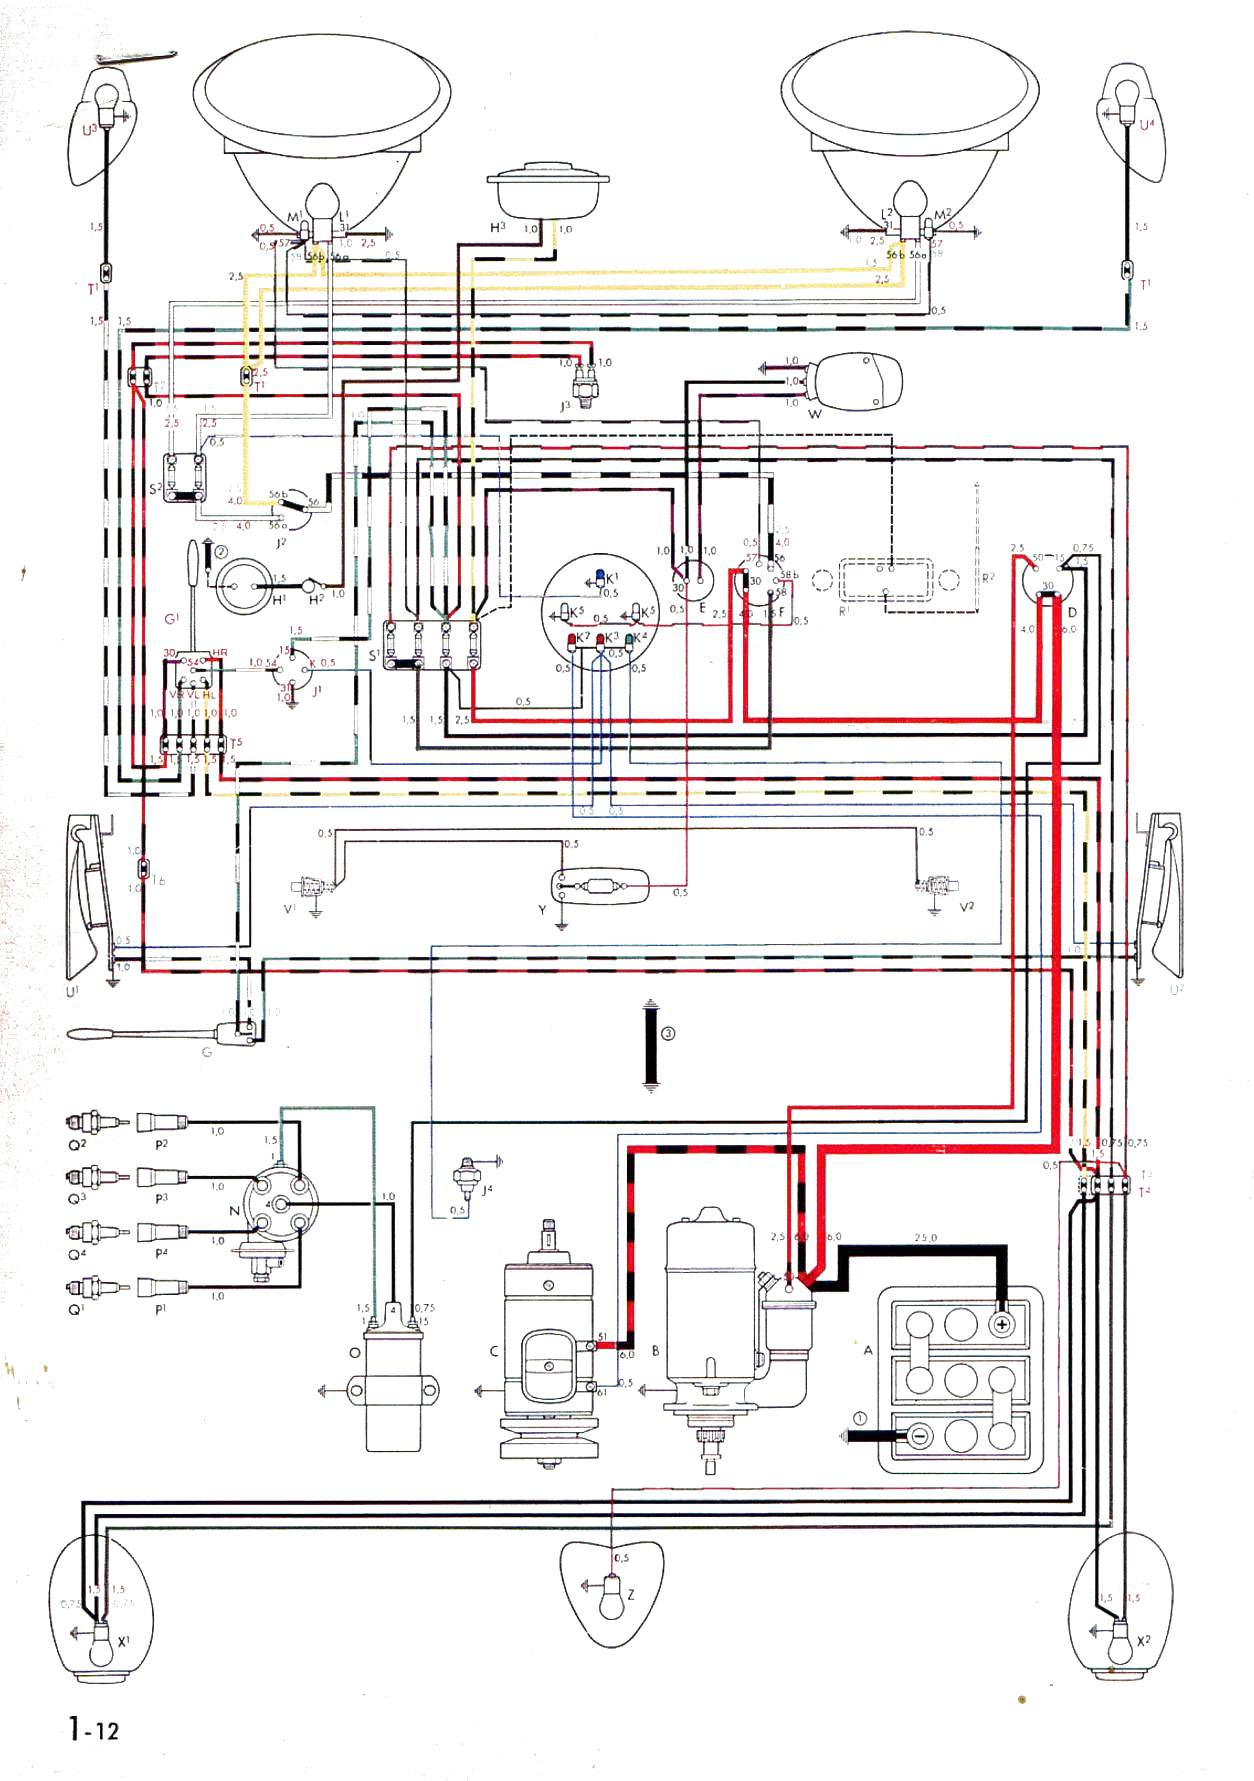 1963 Vw Bug Wiring Diagram Data Wire Harness For 1978 Schema Diagrams 1961